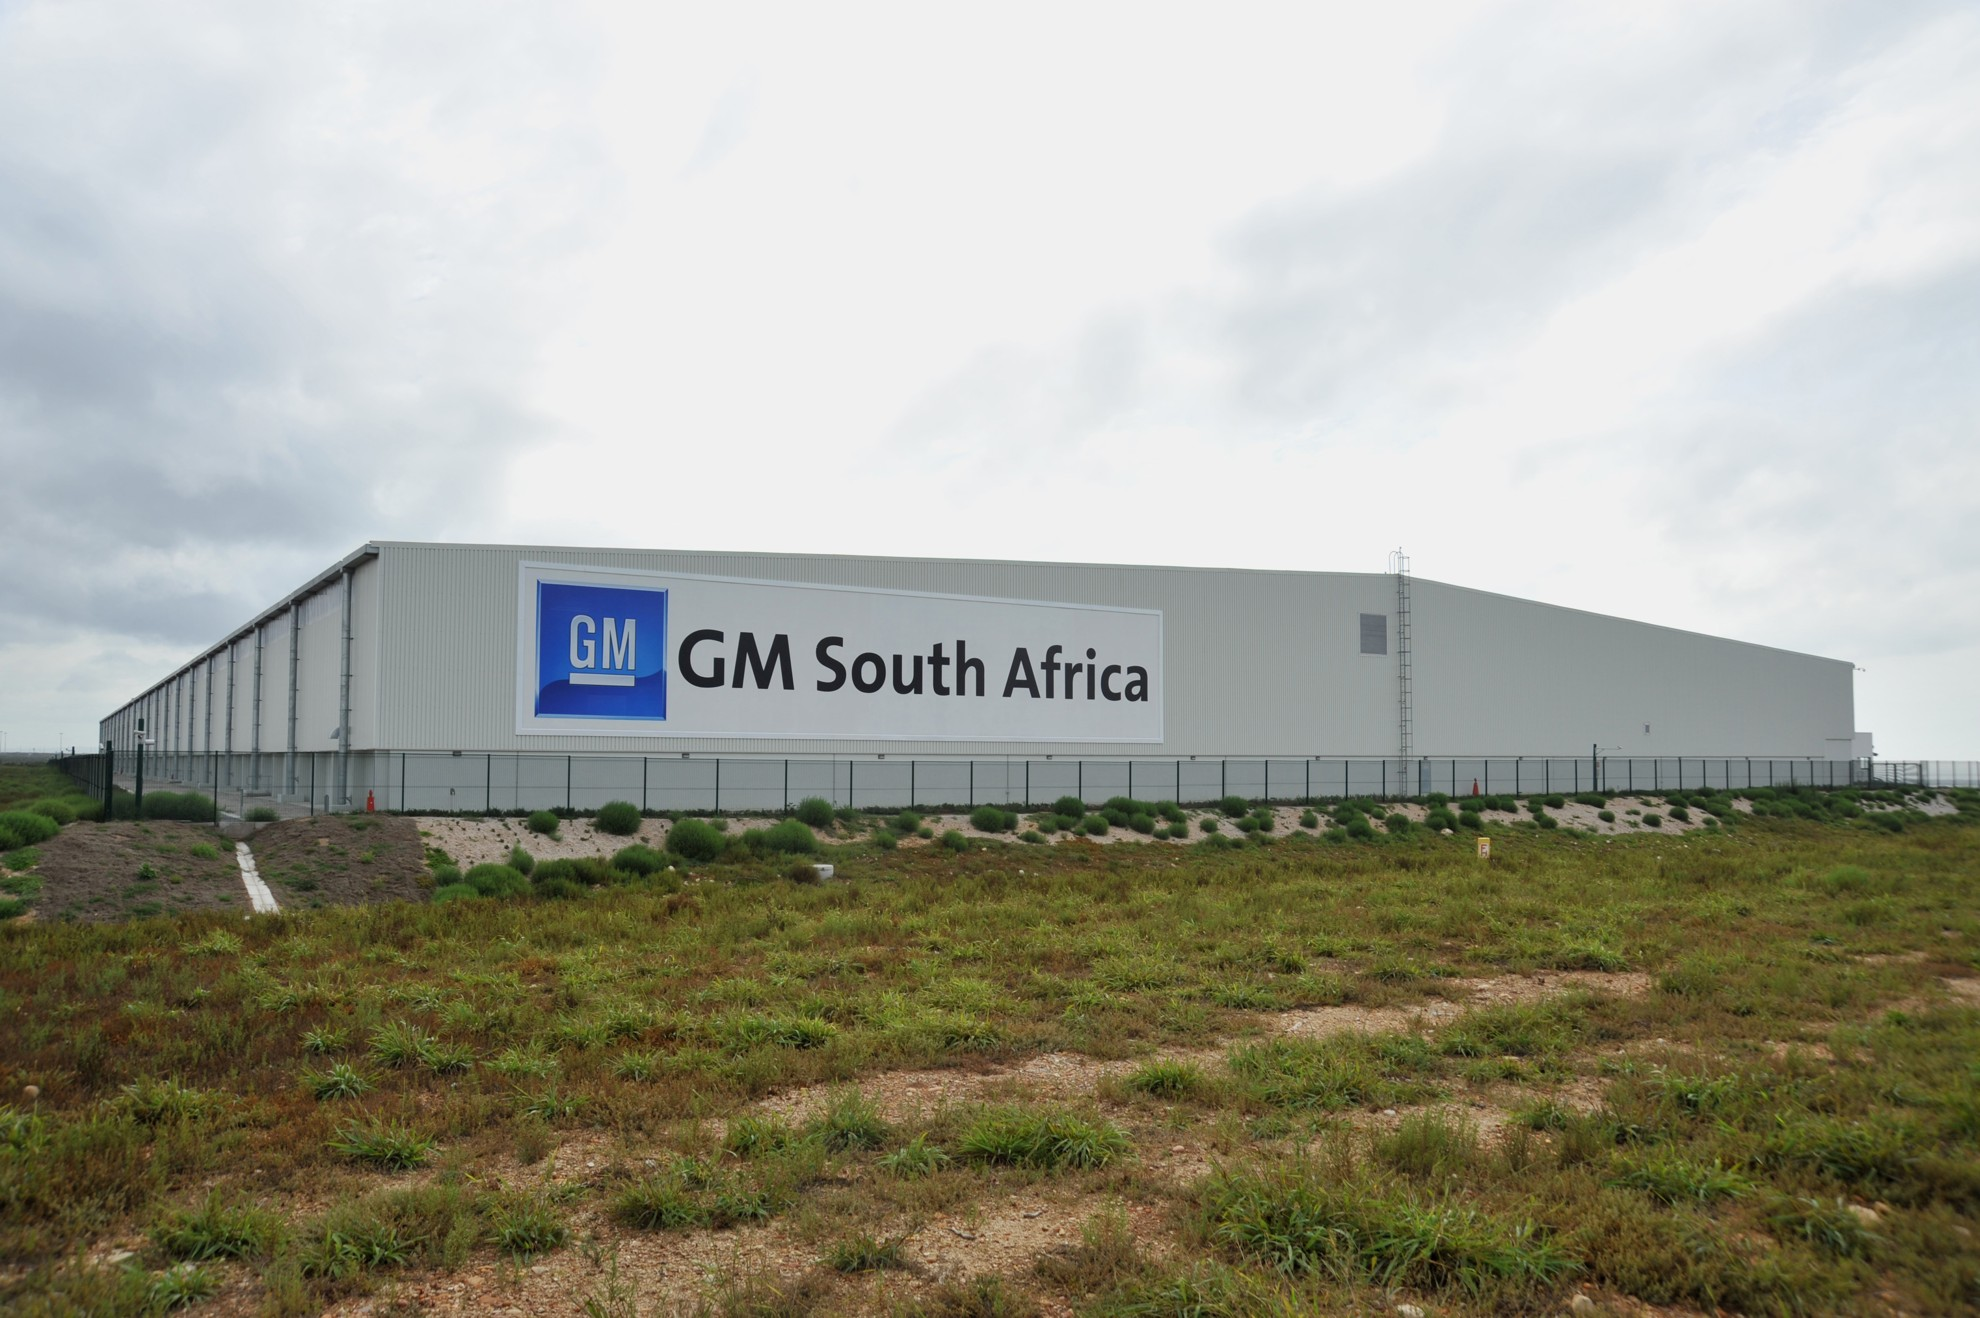 GM South Africa